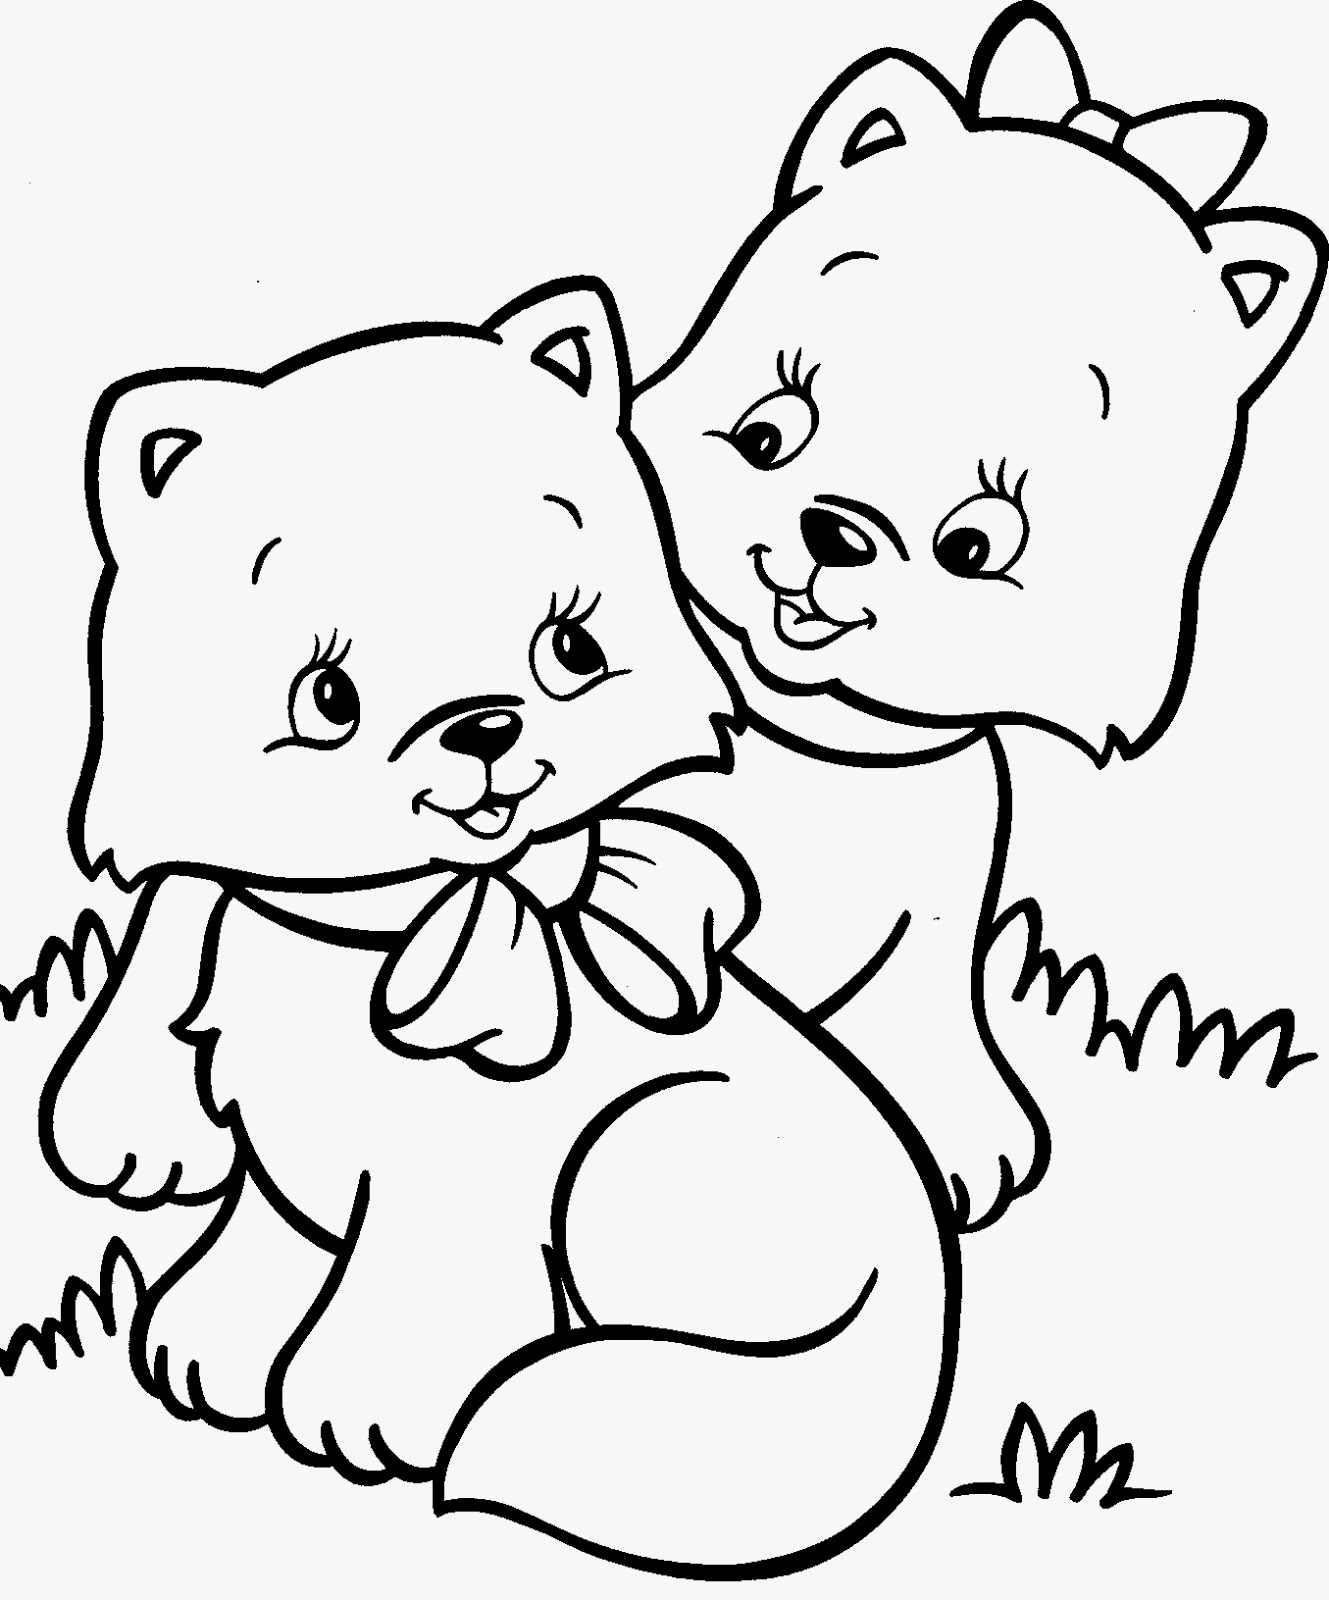 cute dog coloring pages cute dog coloring pages to download and print for free dog cute coloring pages